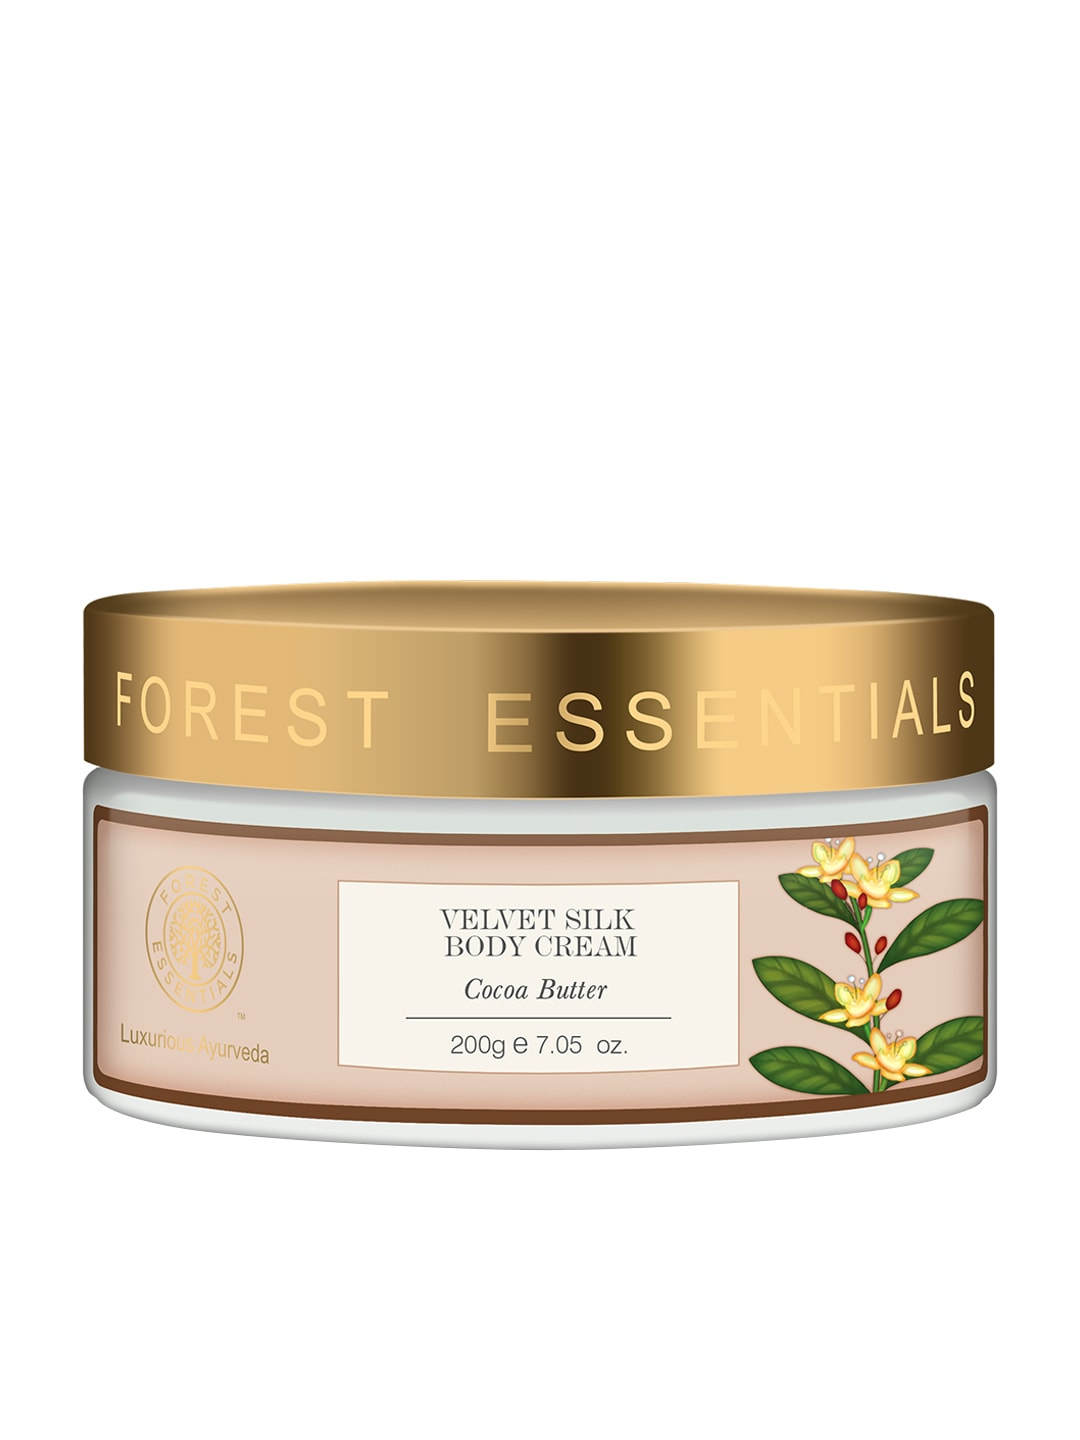 Forest Essentials Unisex Velvet Silk Cocoa Butter Body Cream image